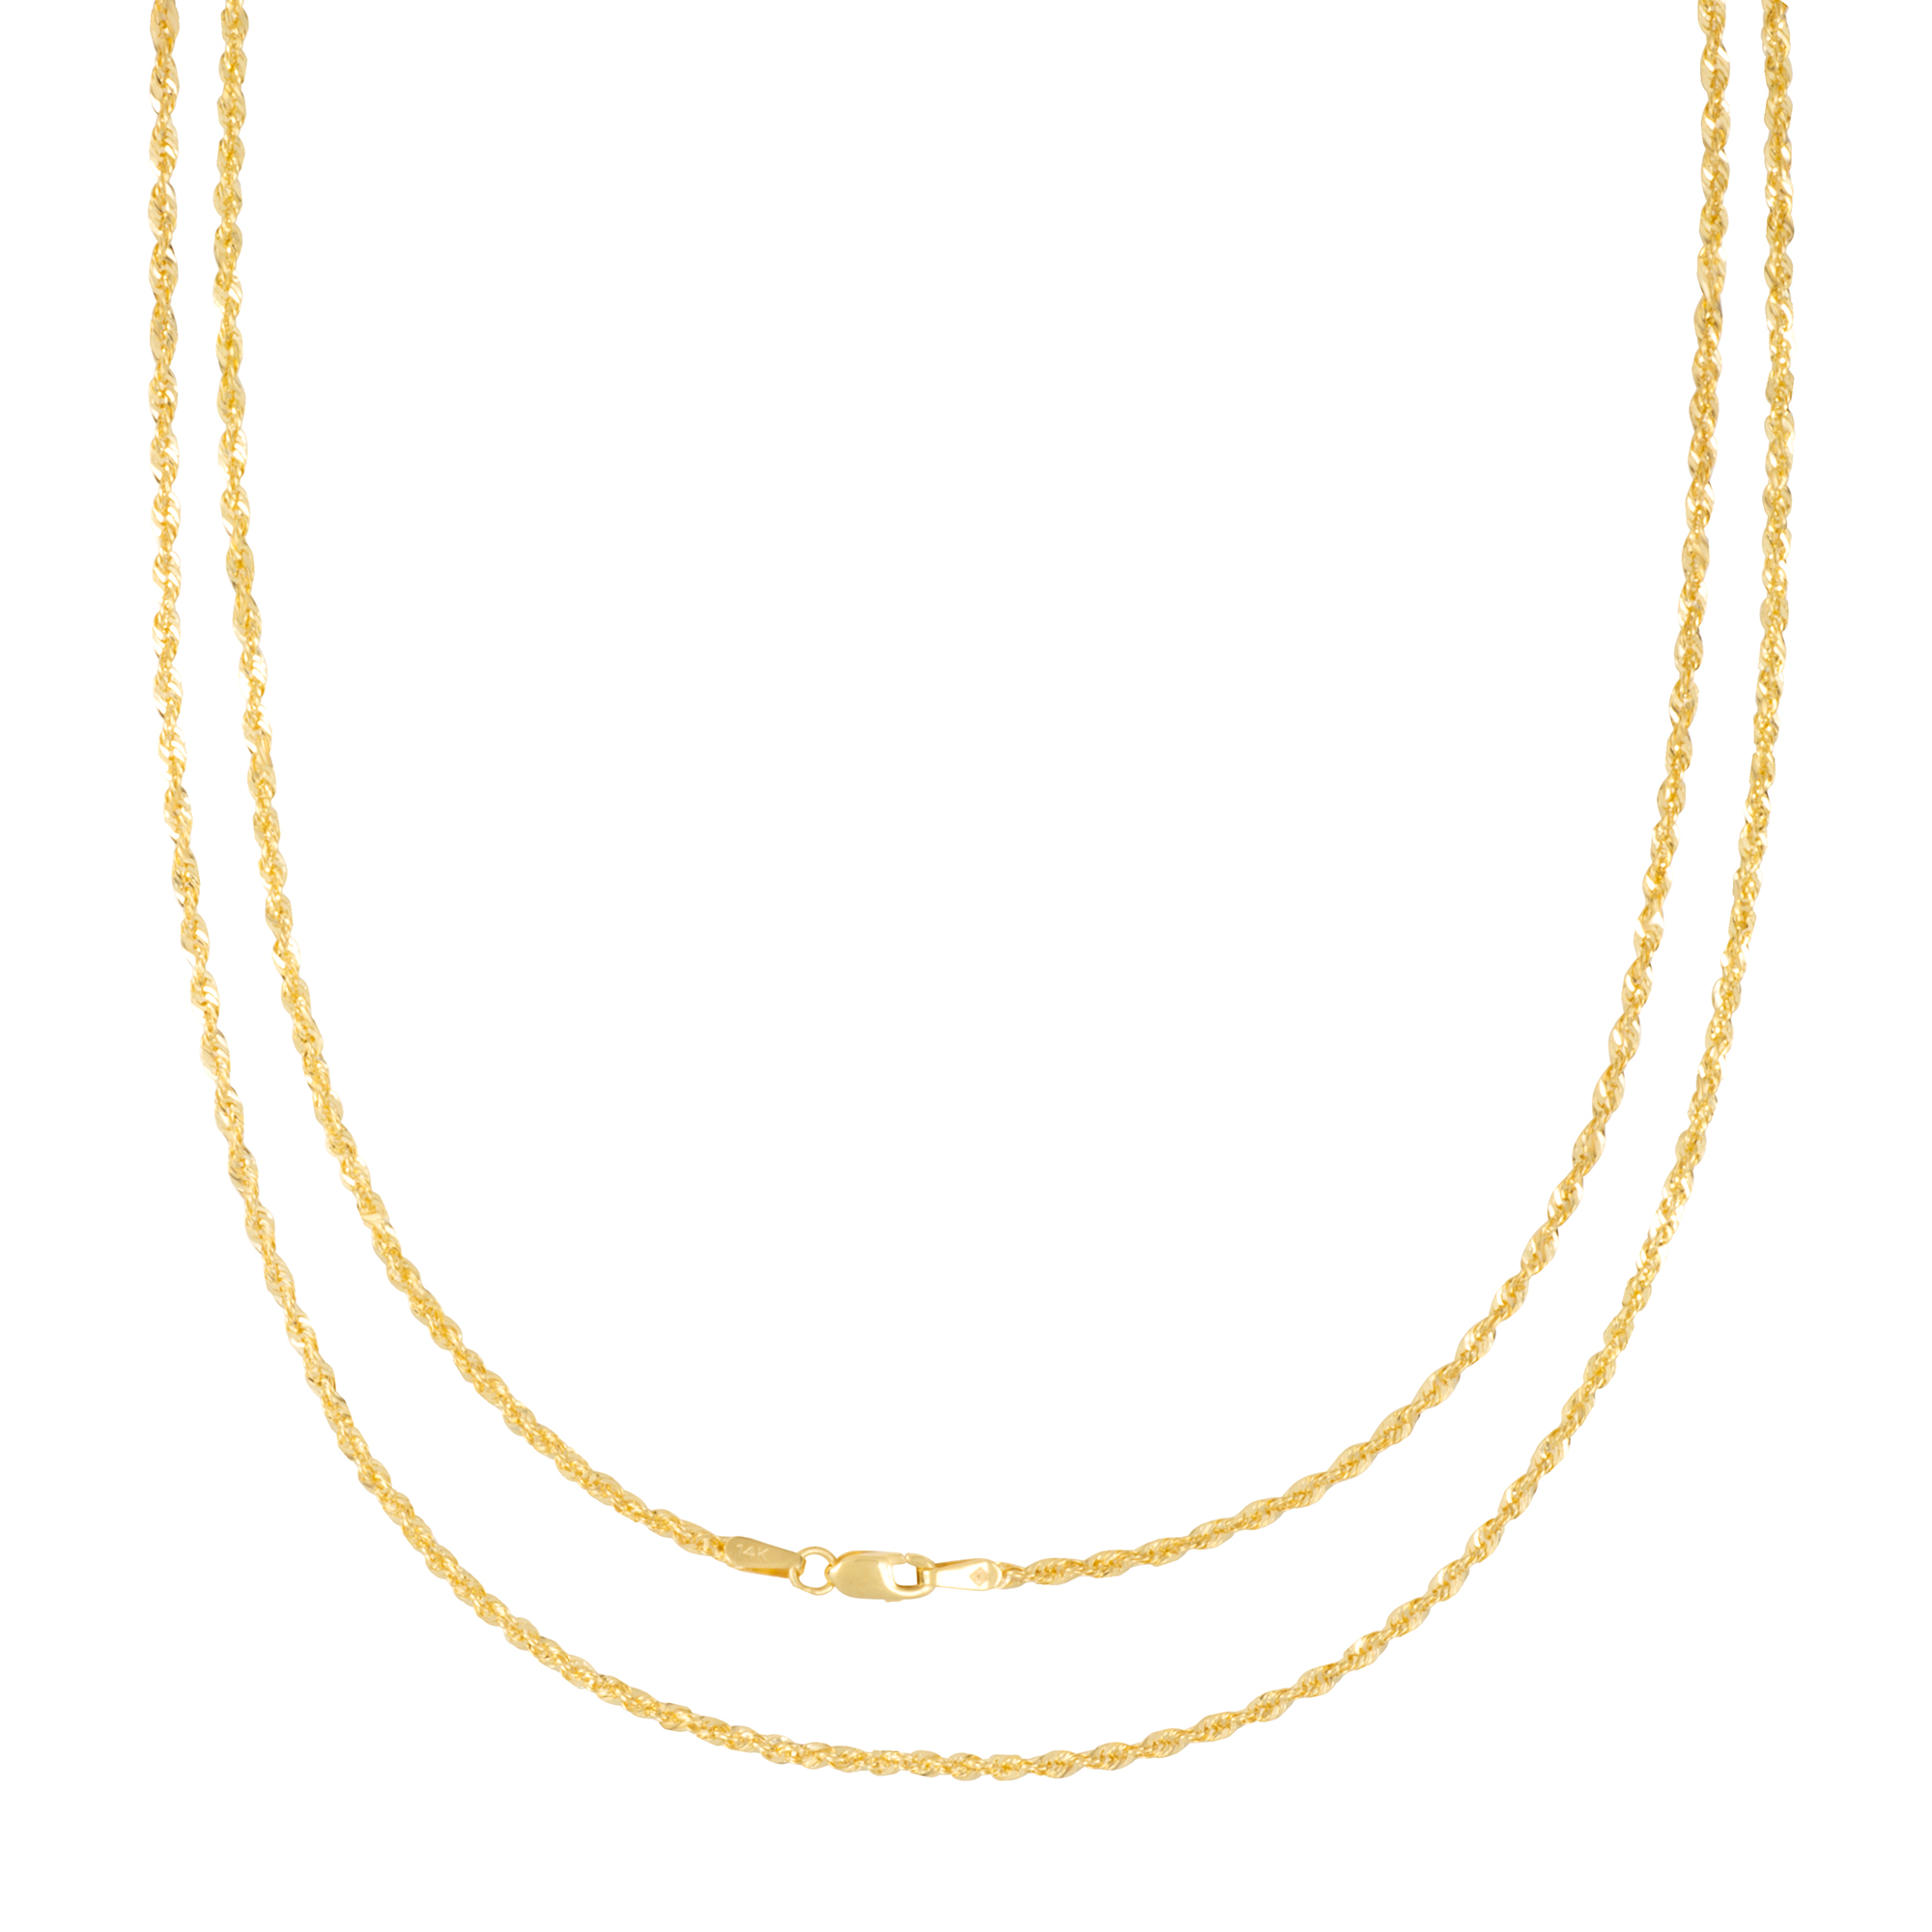 ICE CARATS Stainless Steel 4.20mm 22 Inch Flat Snake Chain Necklace Pendant Charm Fashion Jewelry for Women Gift Set